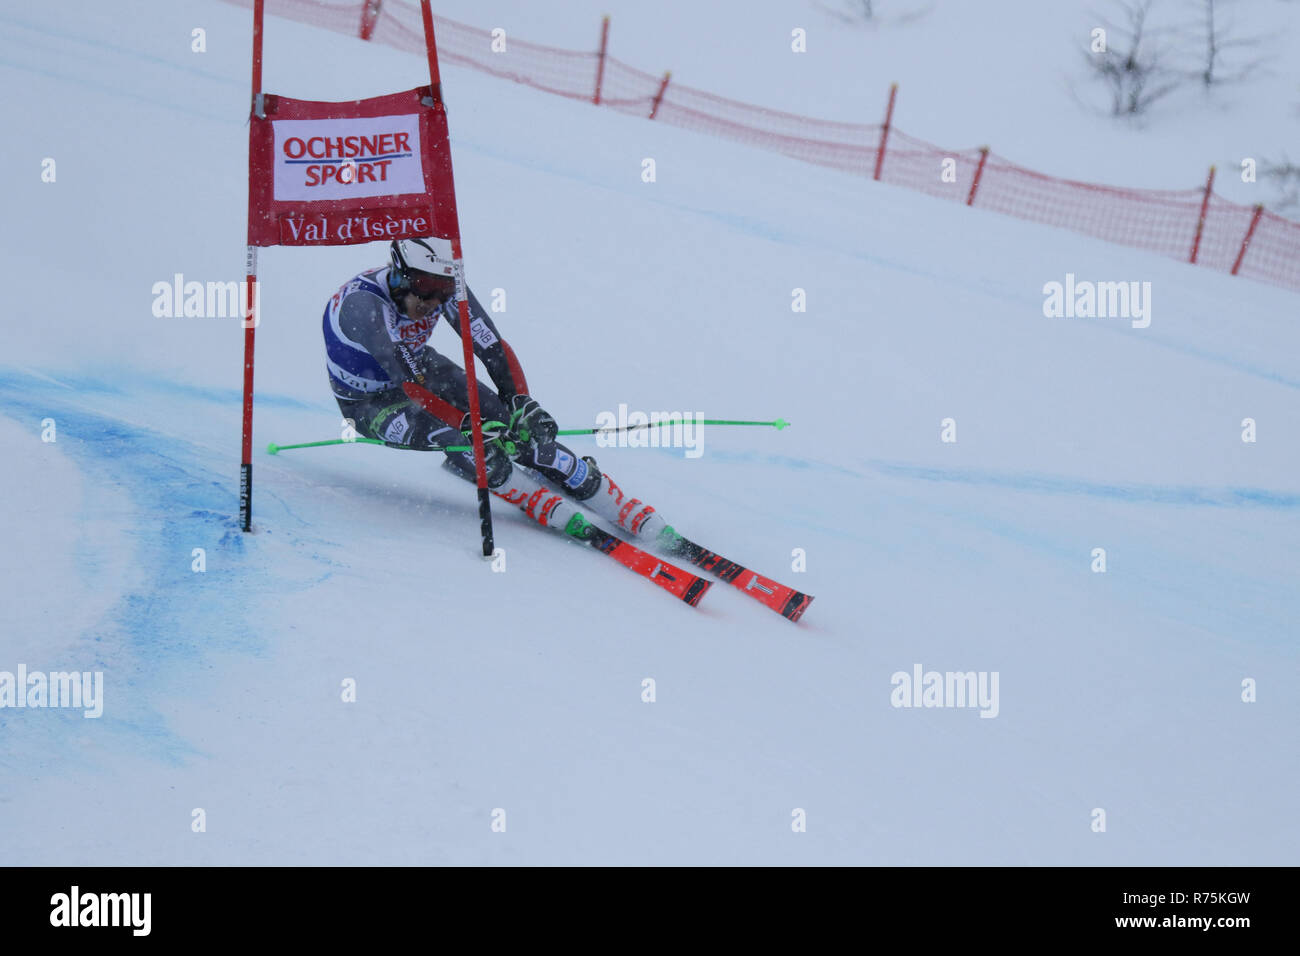 Val d'Isere, France, 08th December 2018. FIS ski world cup. Henrik Kristoffersen 4th after the 1st run finished 2nd in Val d'Isere Credit: Fabrizio Malisan/Alamy Live News - Stock Image